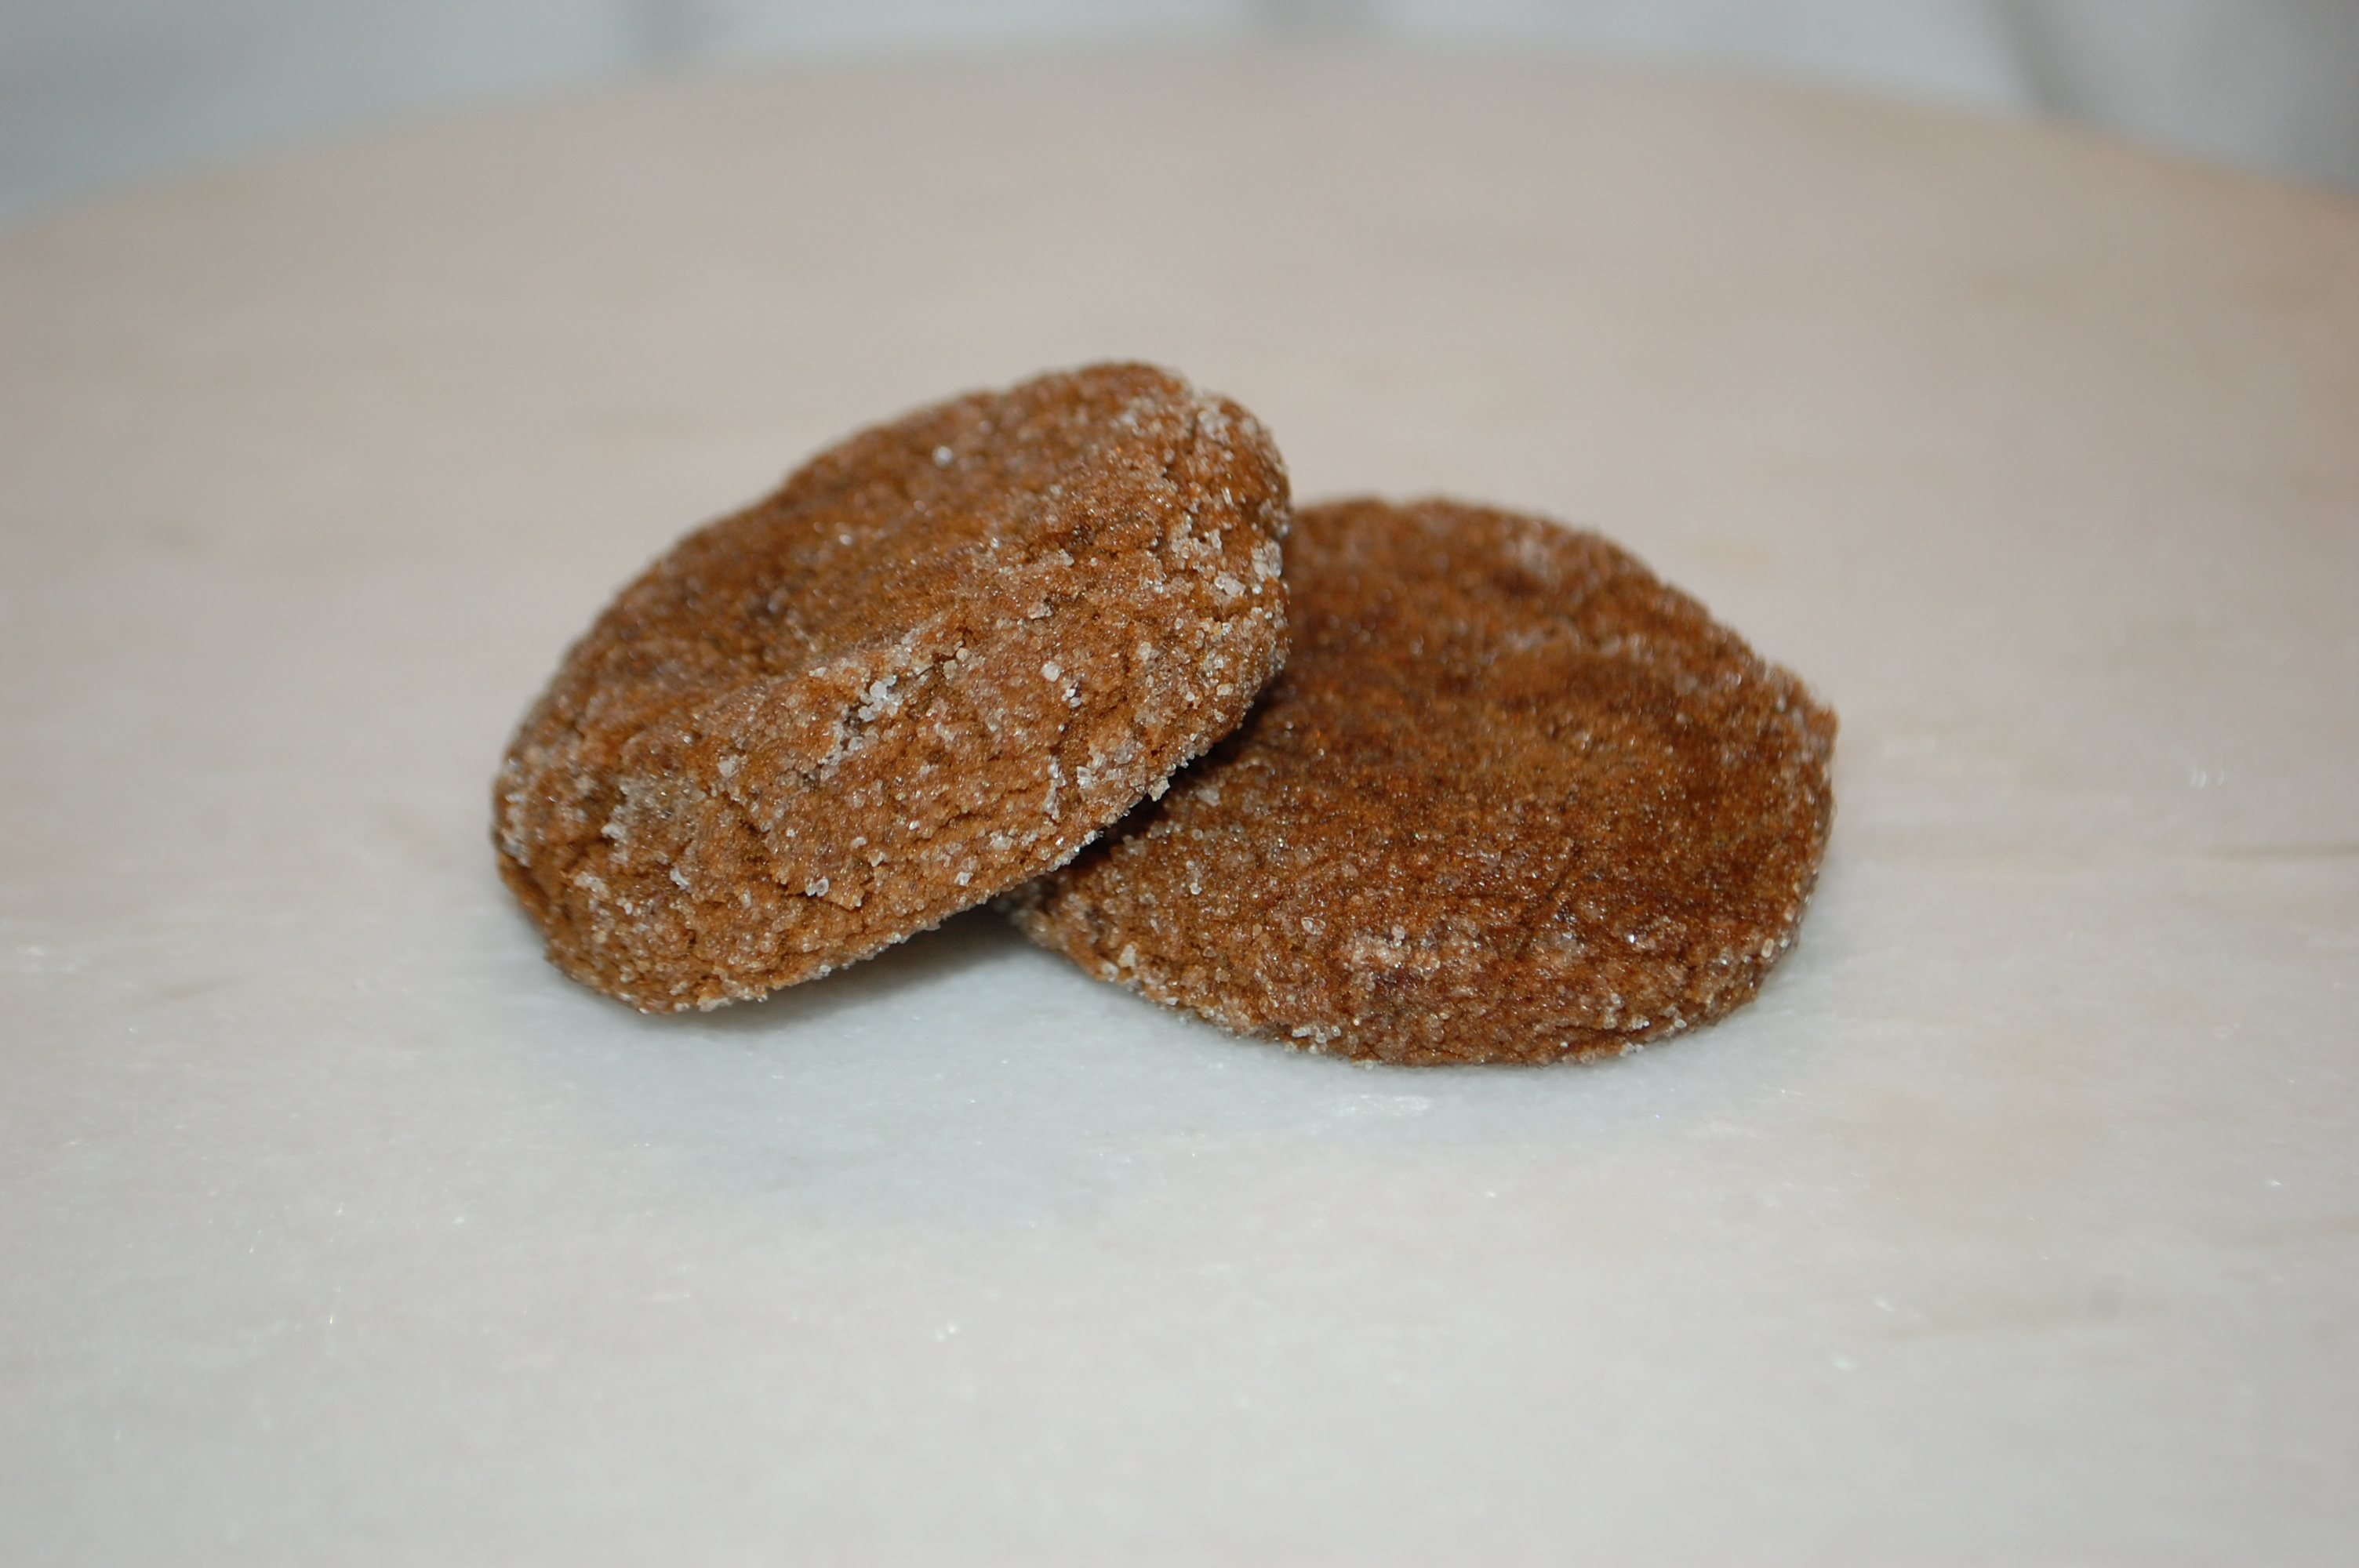 Classic ginger cookie made with molasses and bursting with ginger.